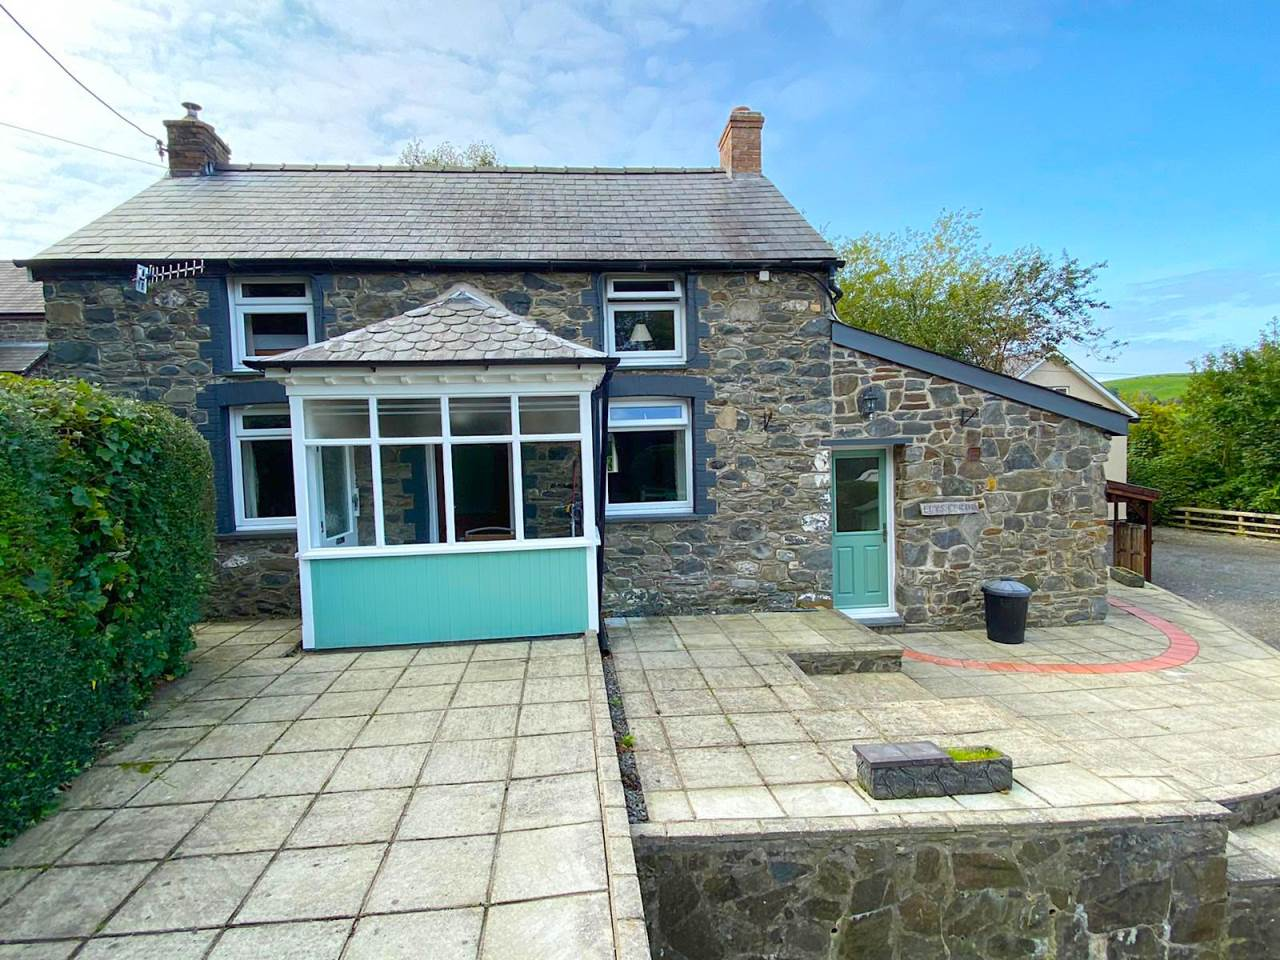 3 bed detached house for sale in Taigwynion, Llandre 0